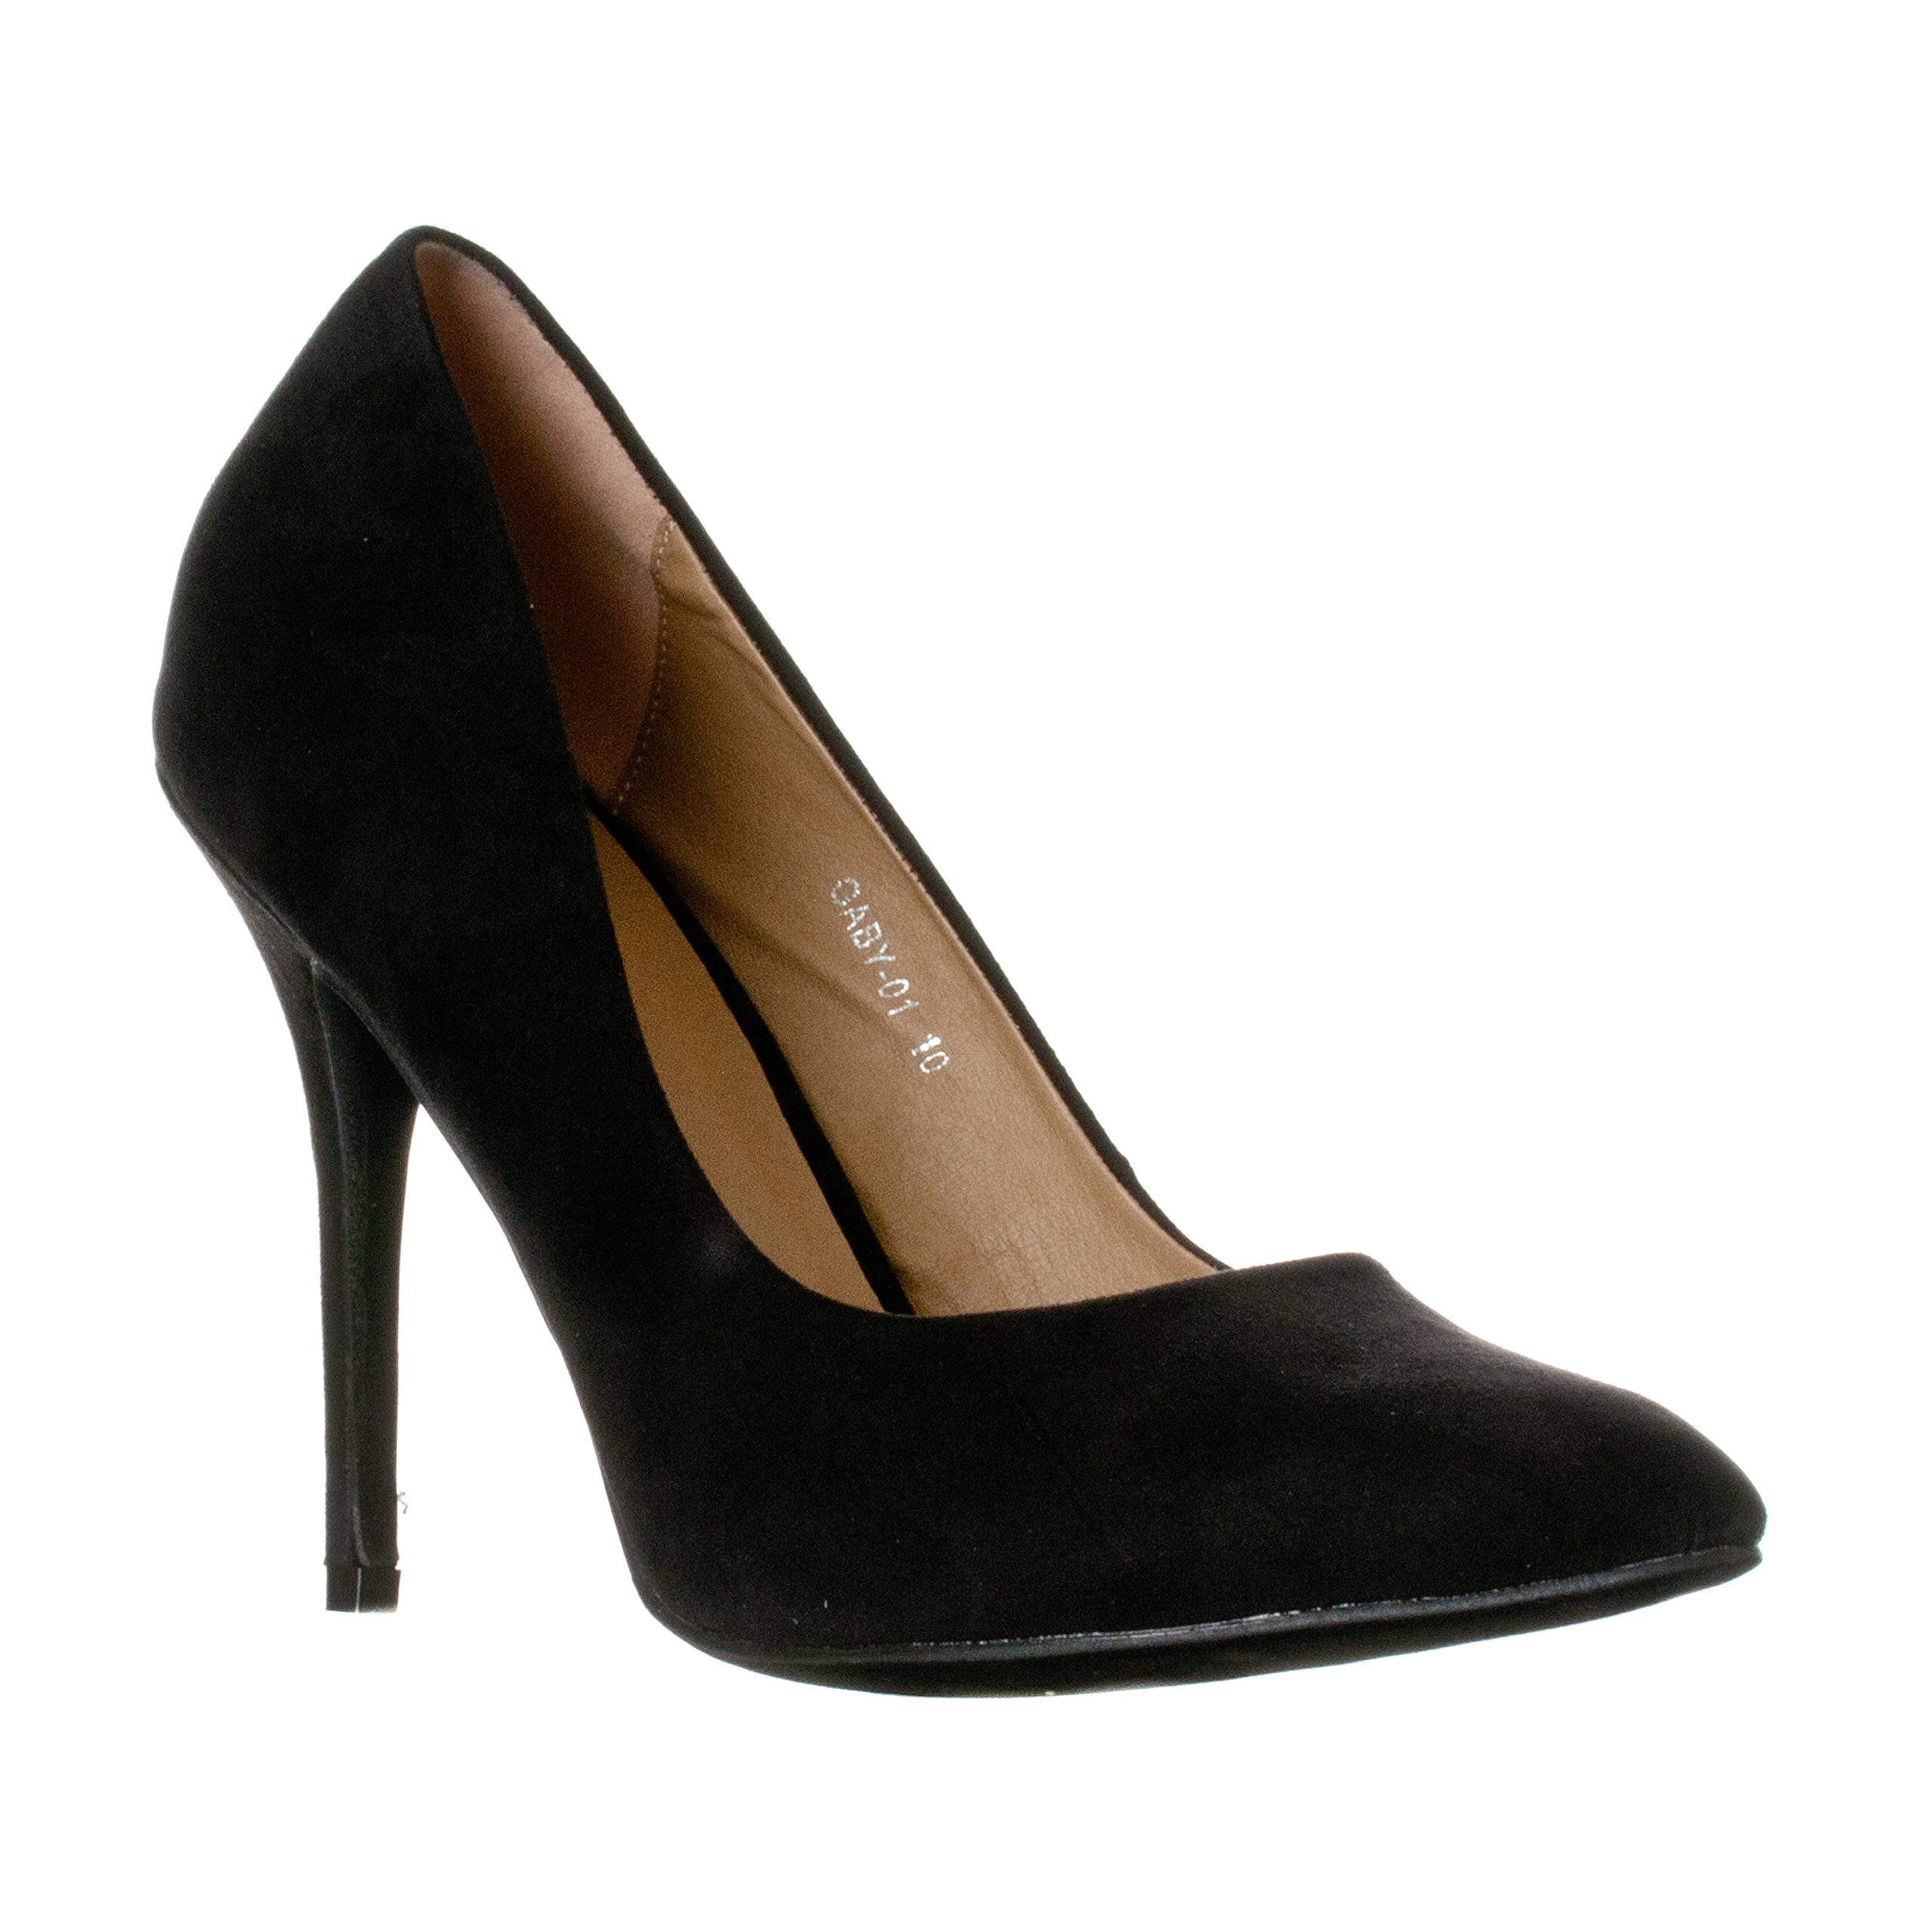 Riverberry Women's Gaby Pointed, Closed Toe Stiletto Pump Heels, Black Suede, 8